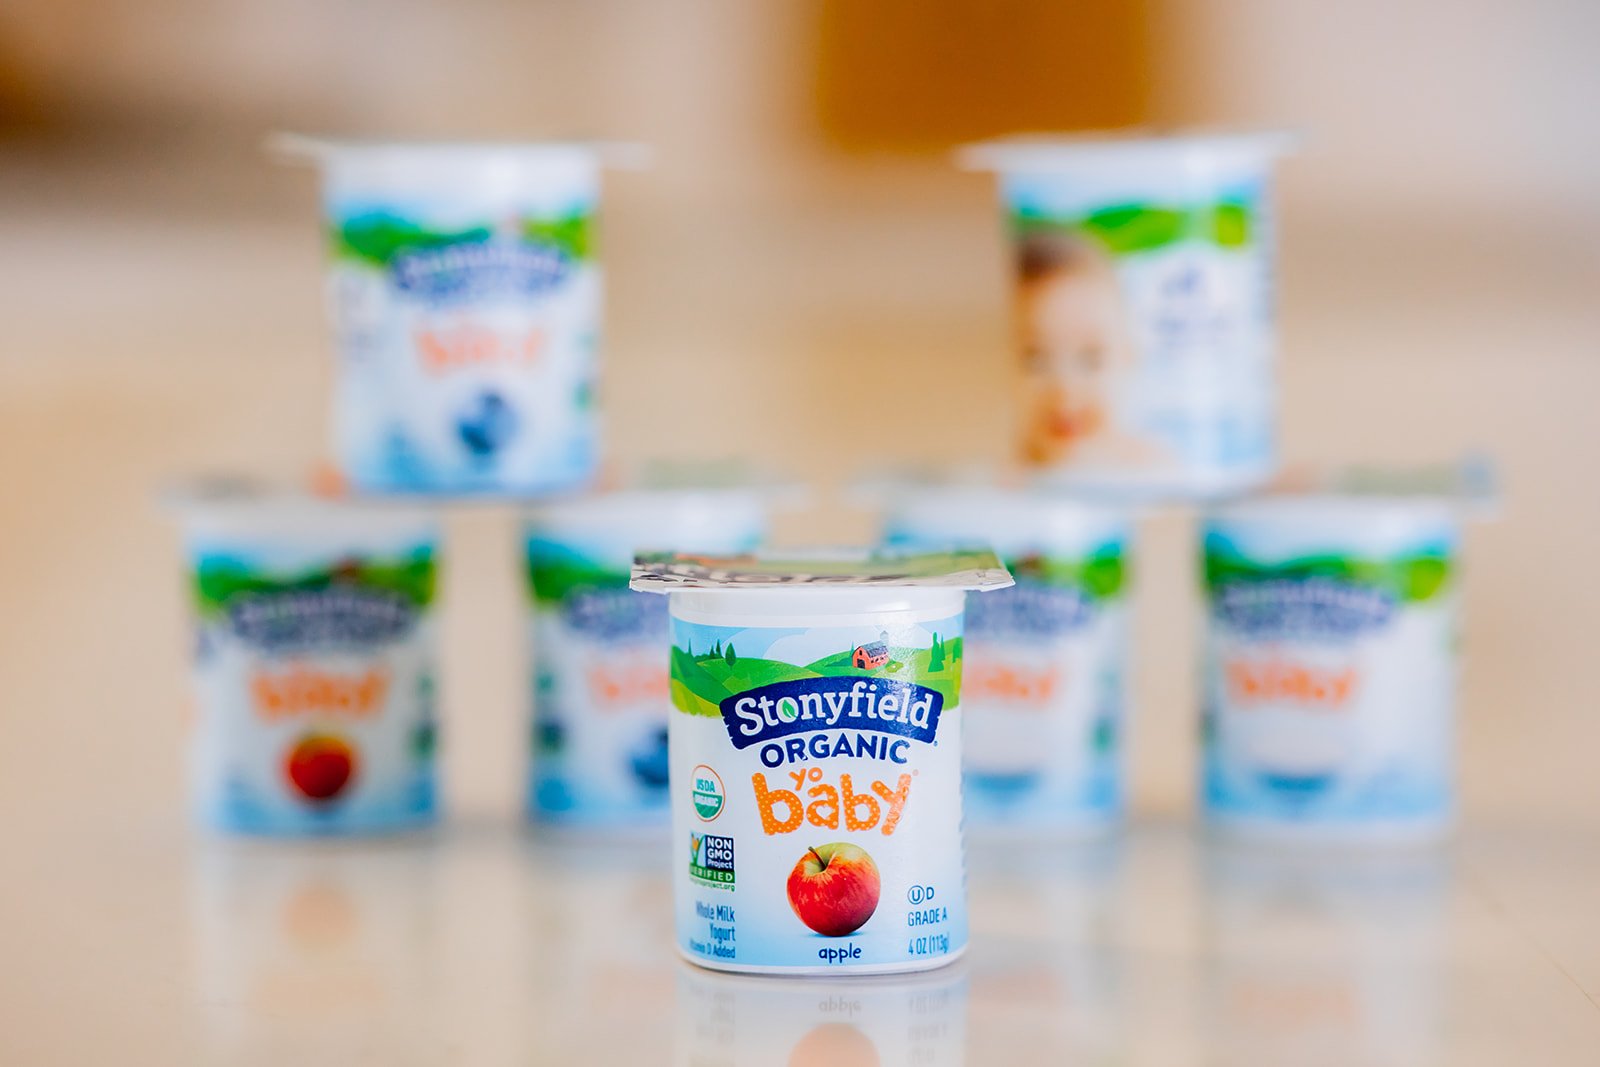 Stonyfield blueberry and apple yogurt cups on the kitchen counter.